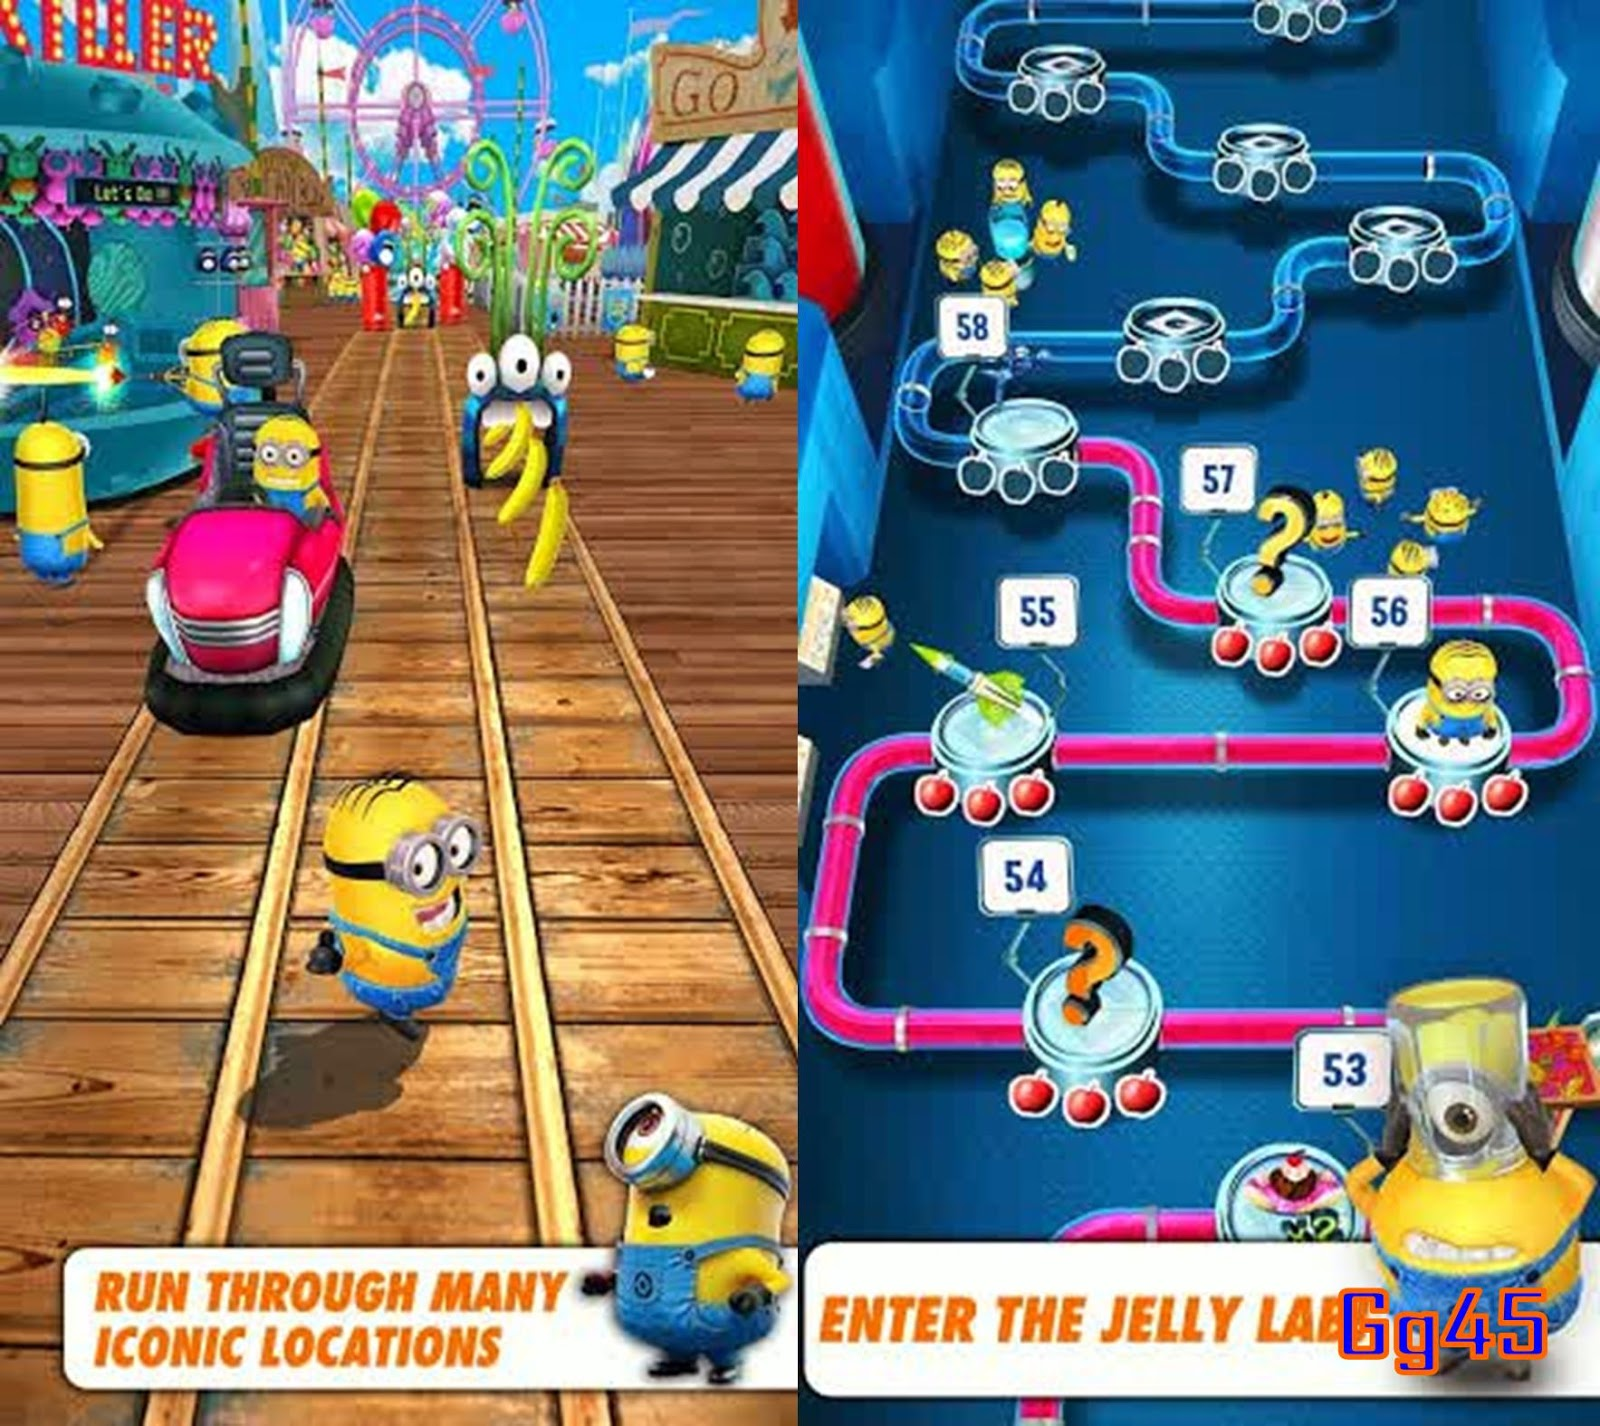 Free Downaload Despicable Me Apk Mod Terbaru 2015